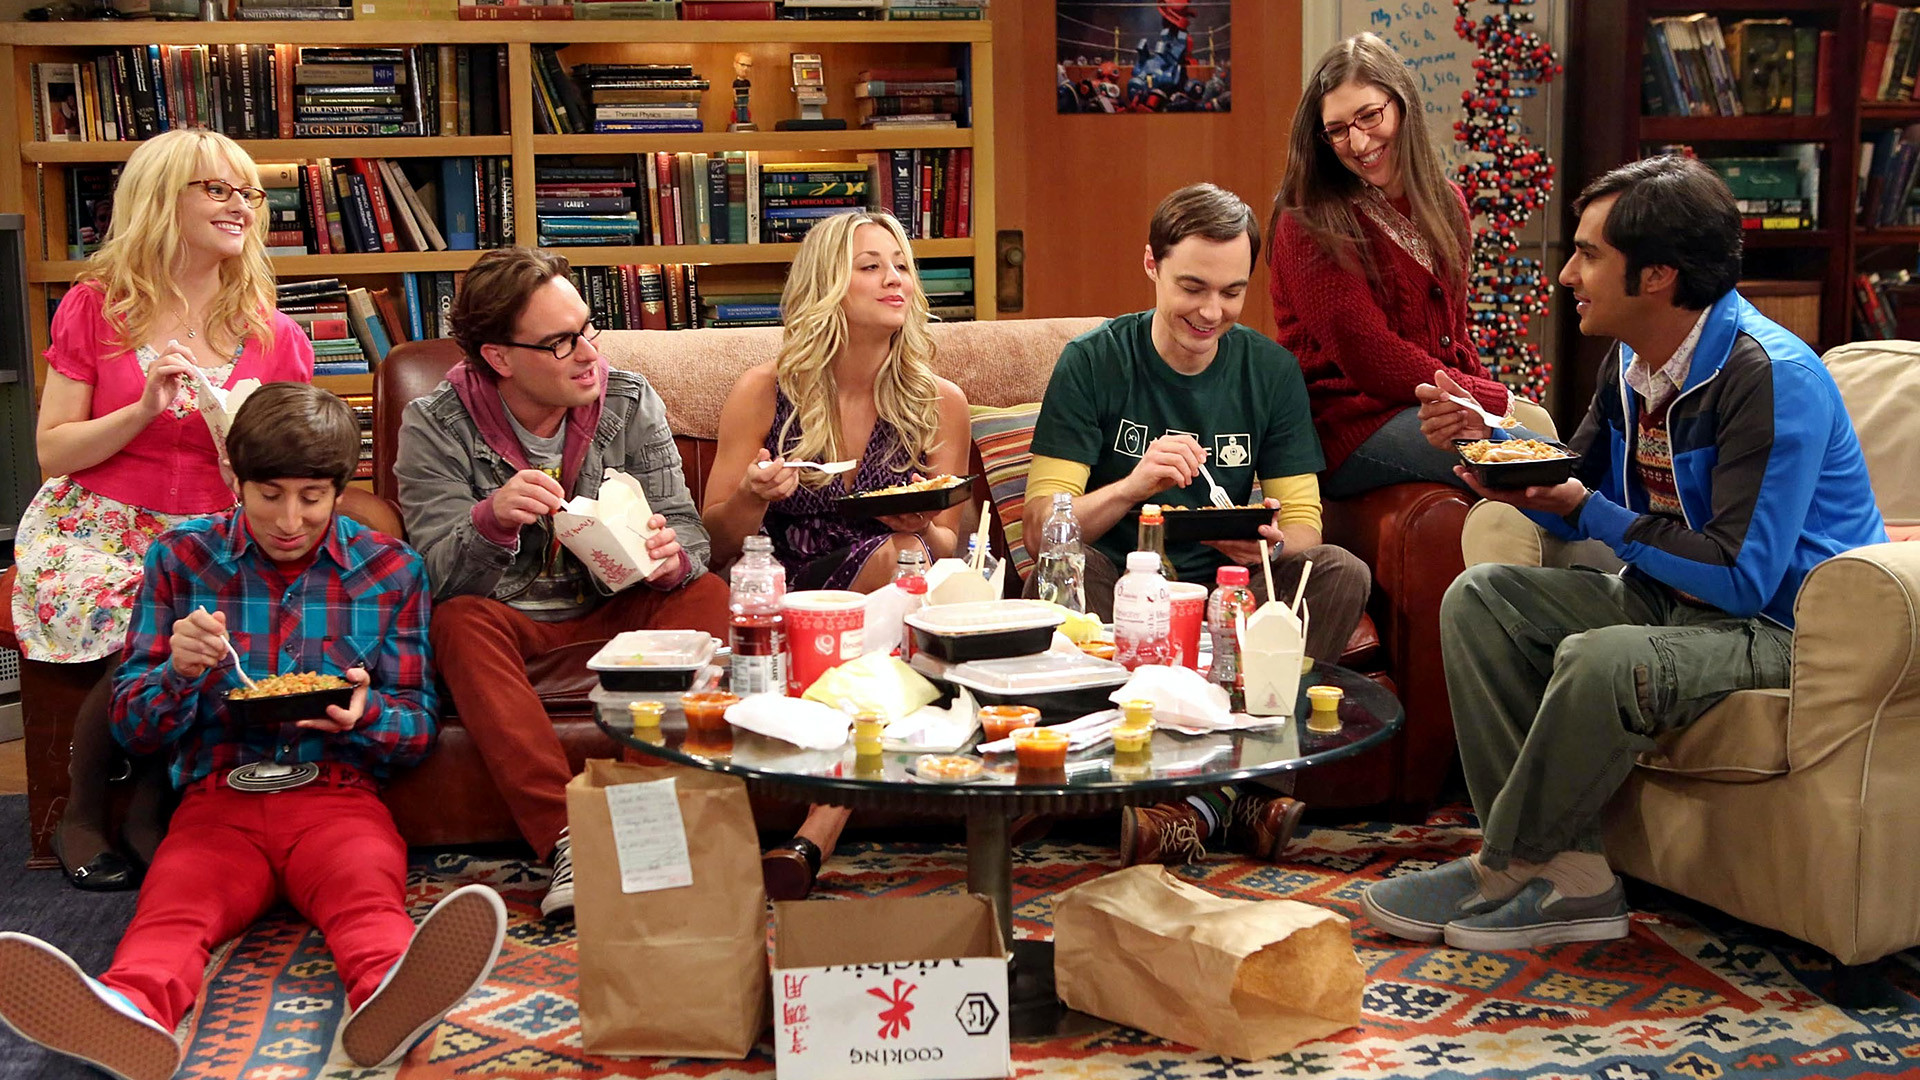 The Big Bang Theory stars on set